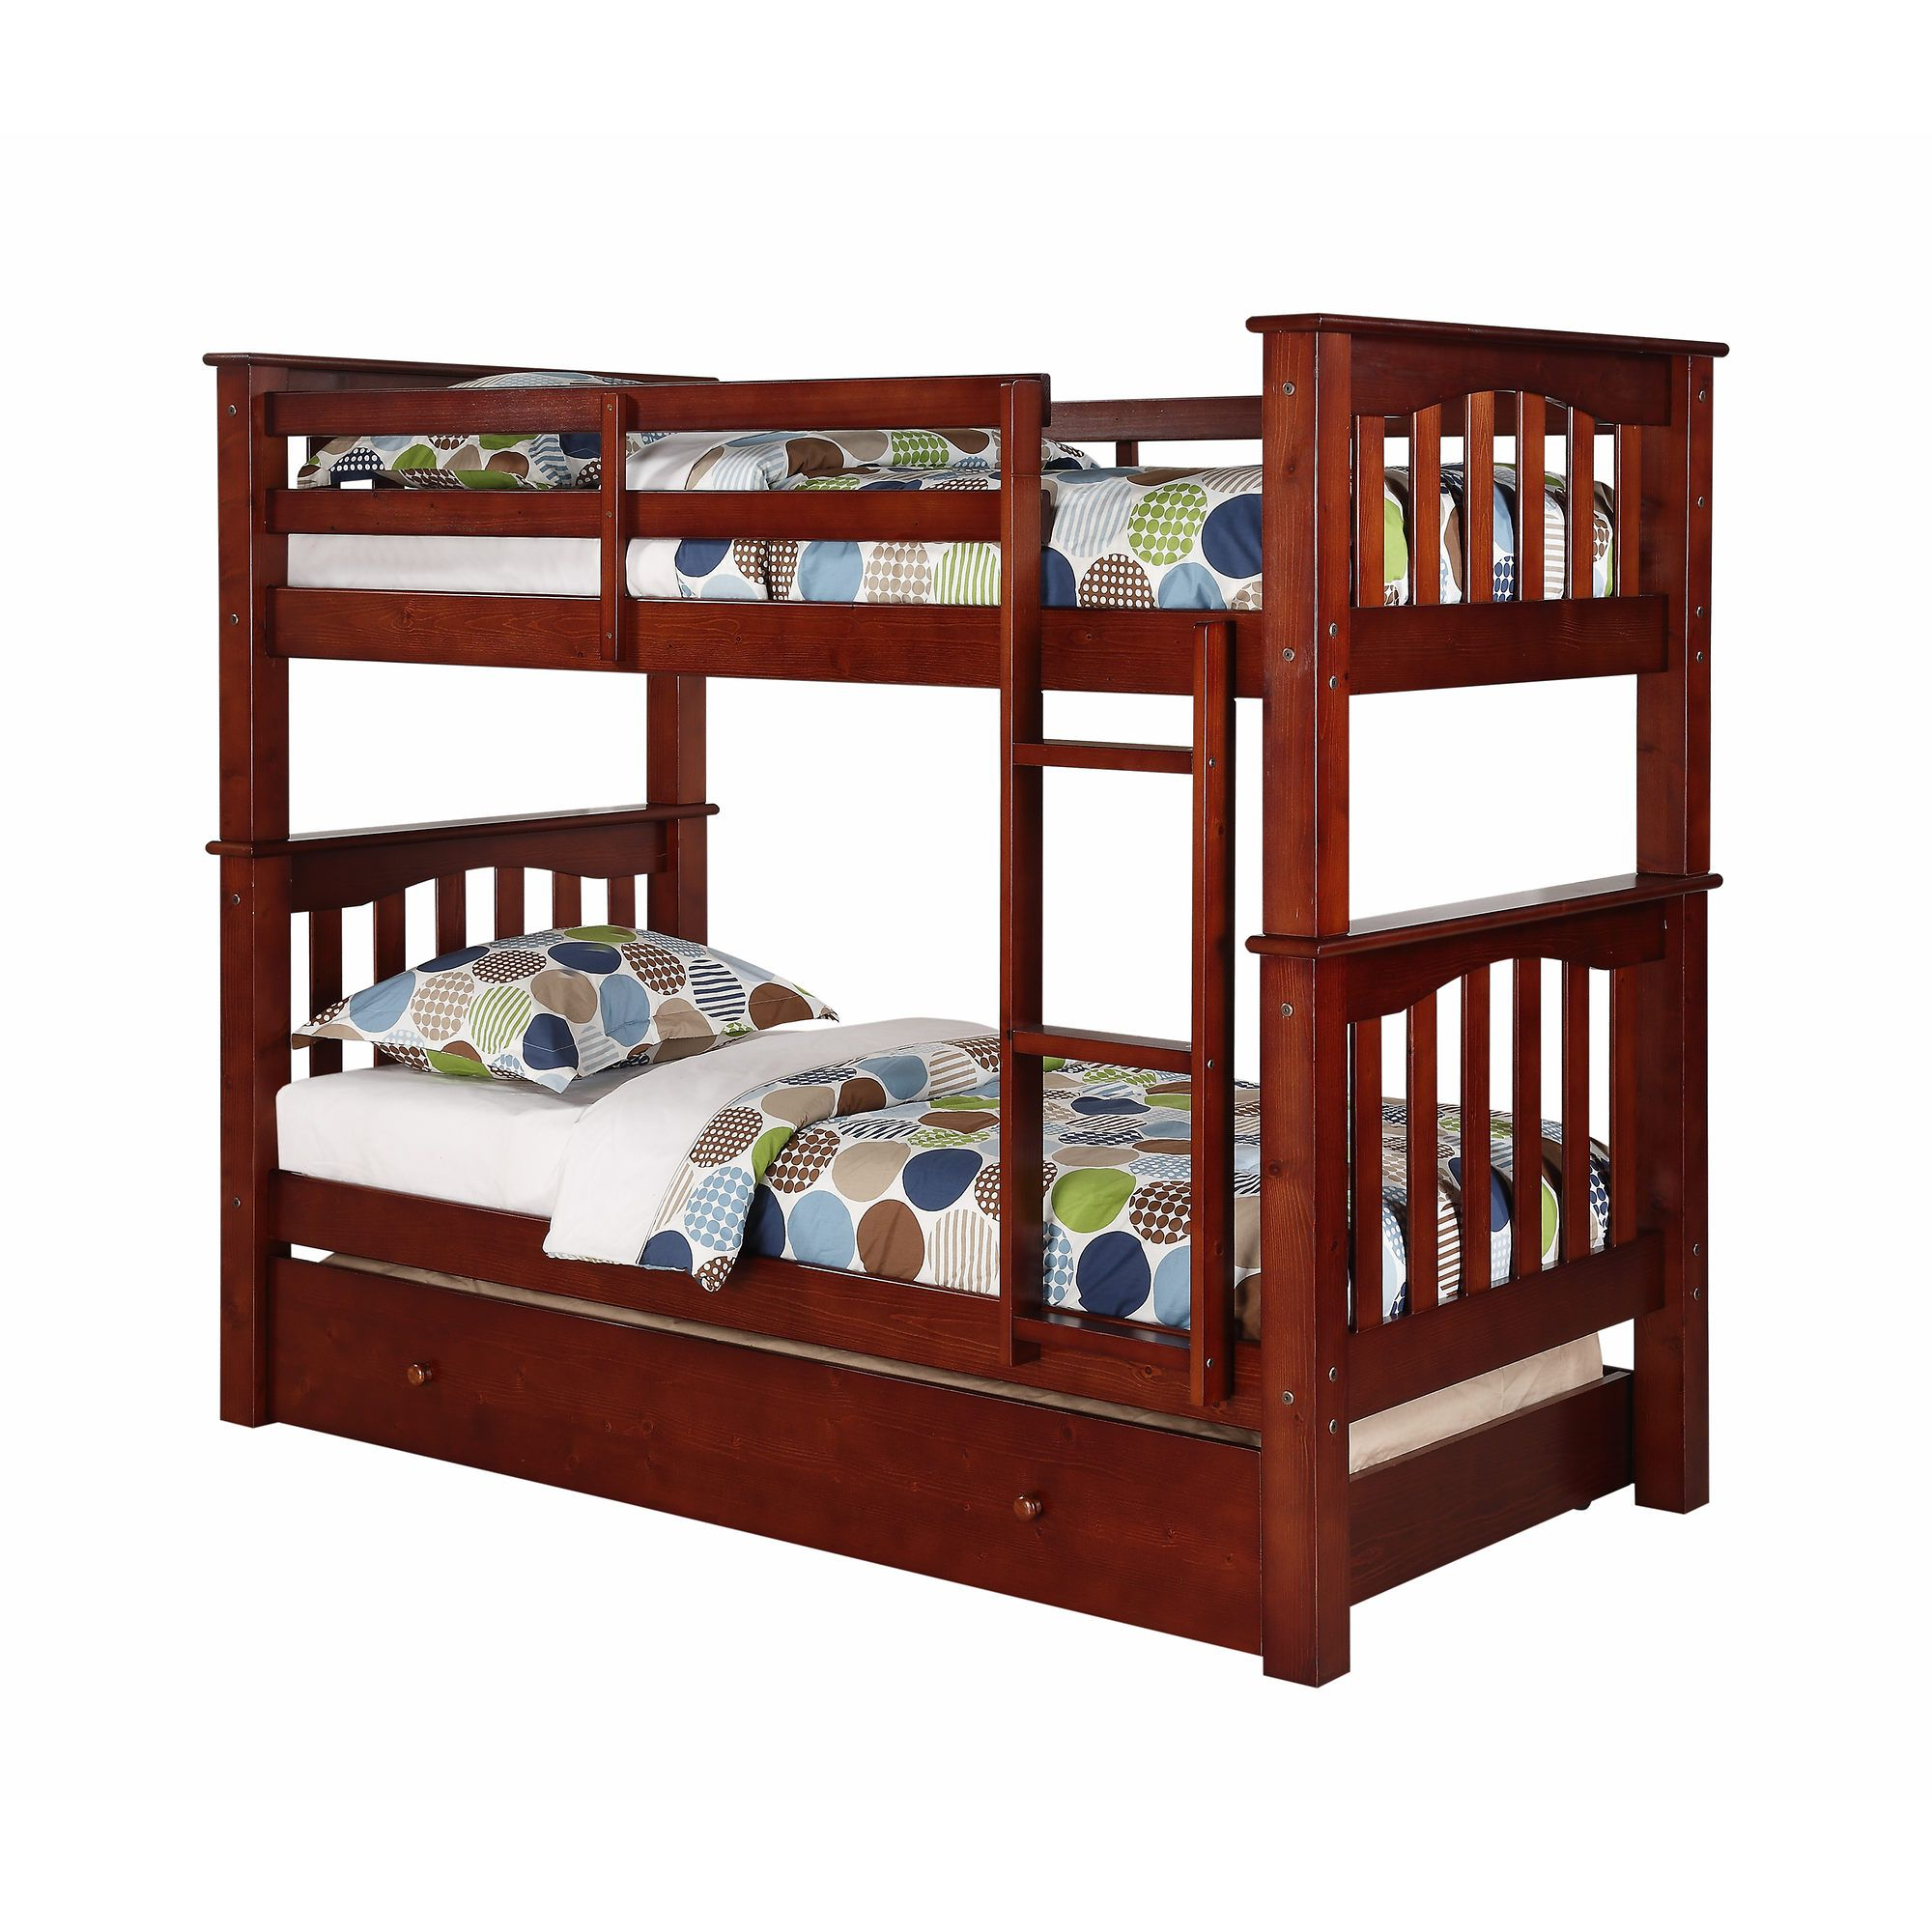 berkley jensen twin size bunk bed with trundle this is the bed i